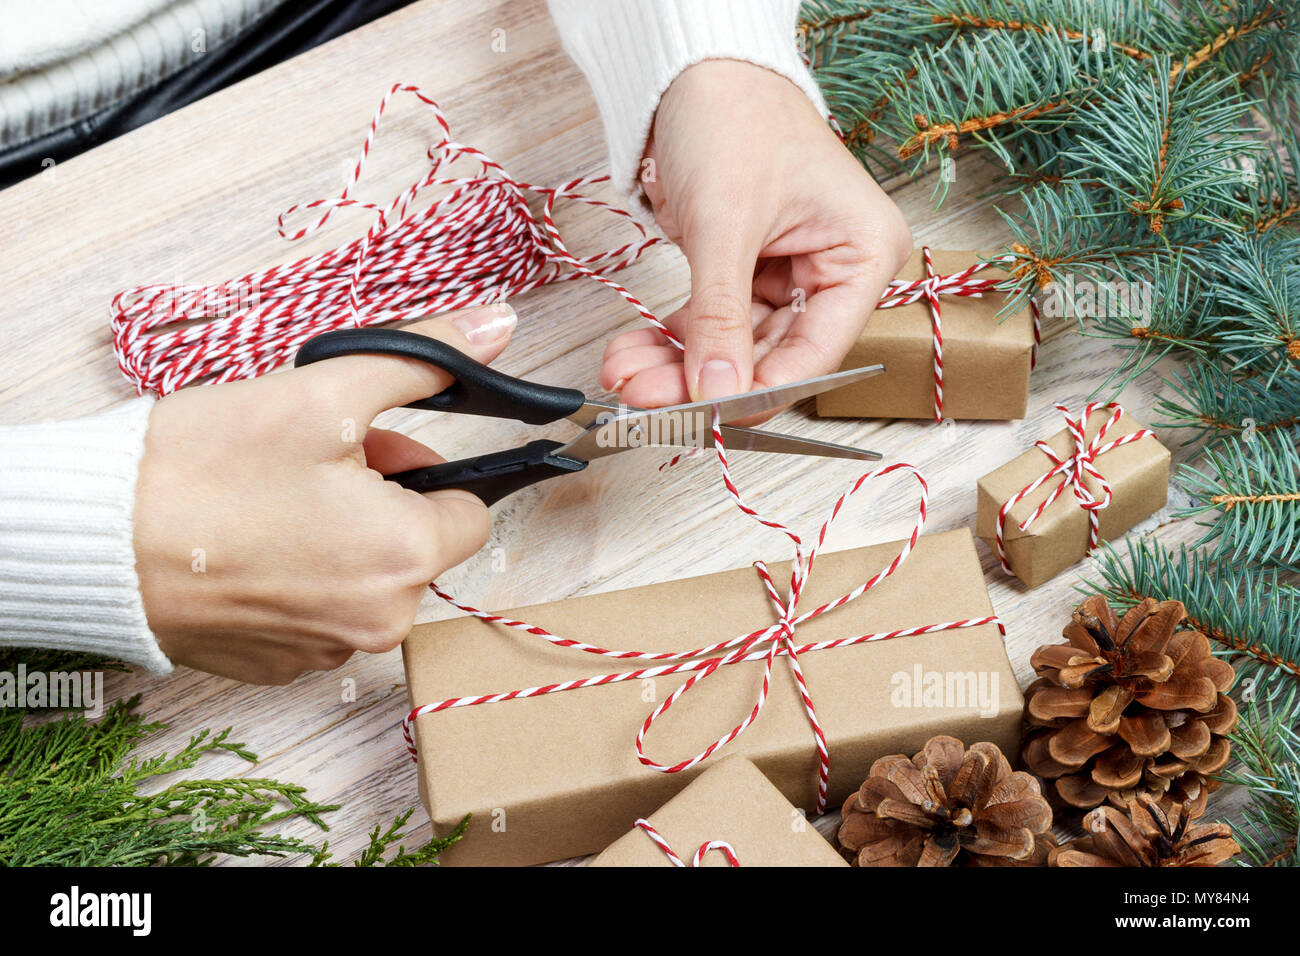 Christmas gift wrapping background. Female hands packaging christmas present with red ribbon, top view. Winter holidays concept, flat lay. Woman holdi - Stock Image